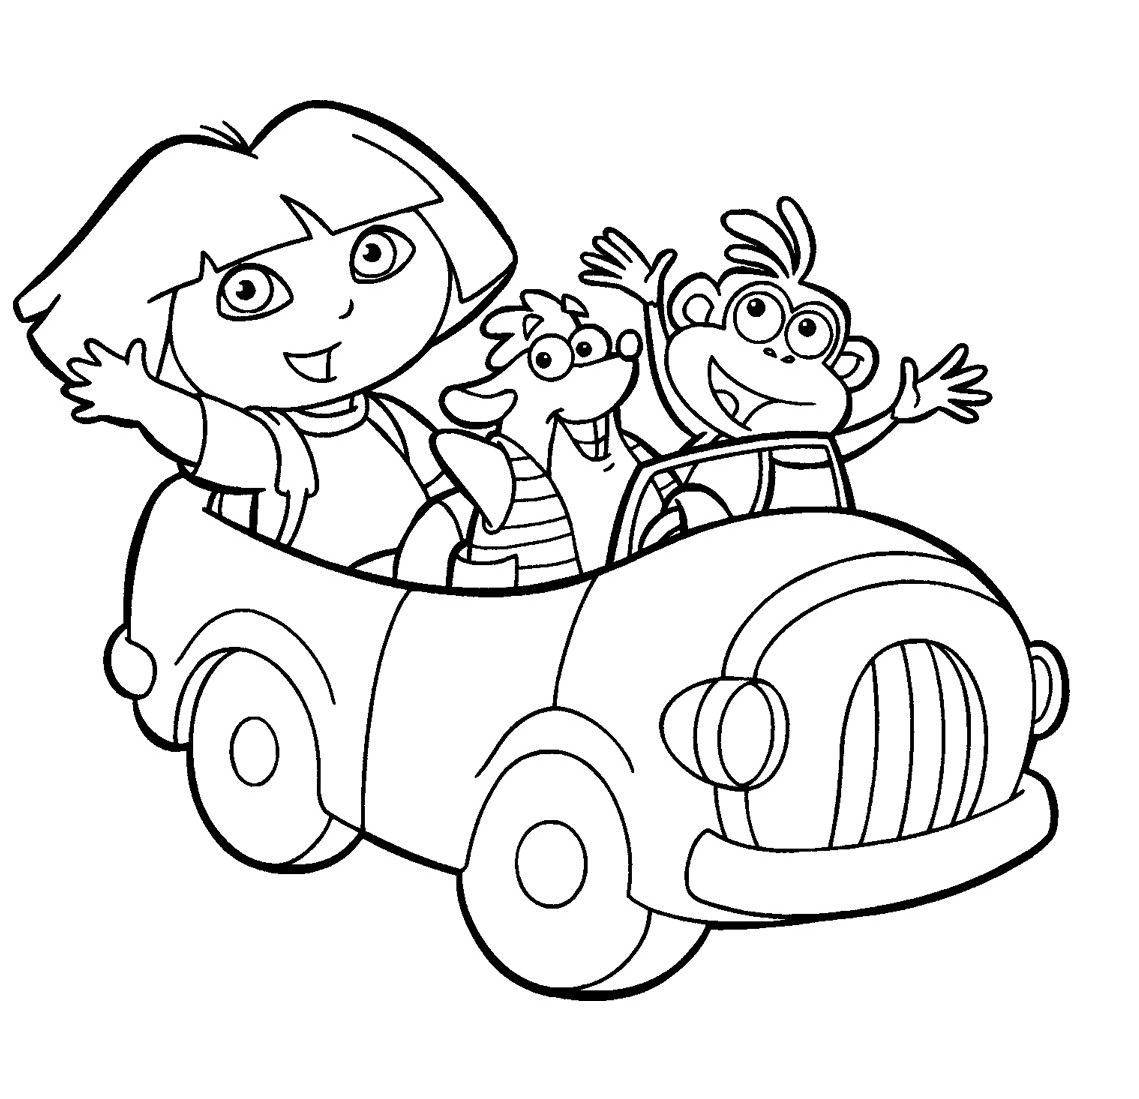 dora the explorer printable coloring pages dora the explorer coloring pages printable get coloring dora printable pages explorer the coloring